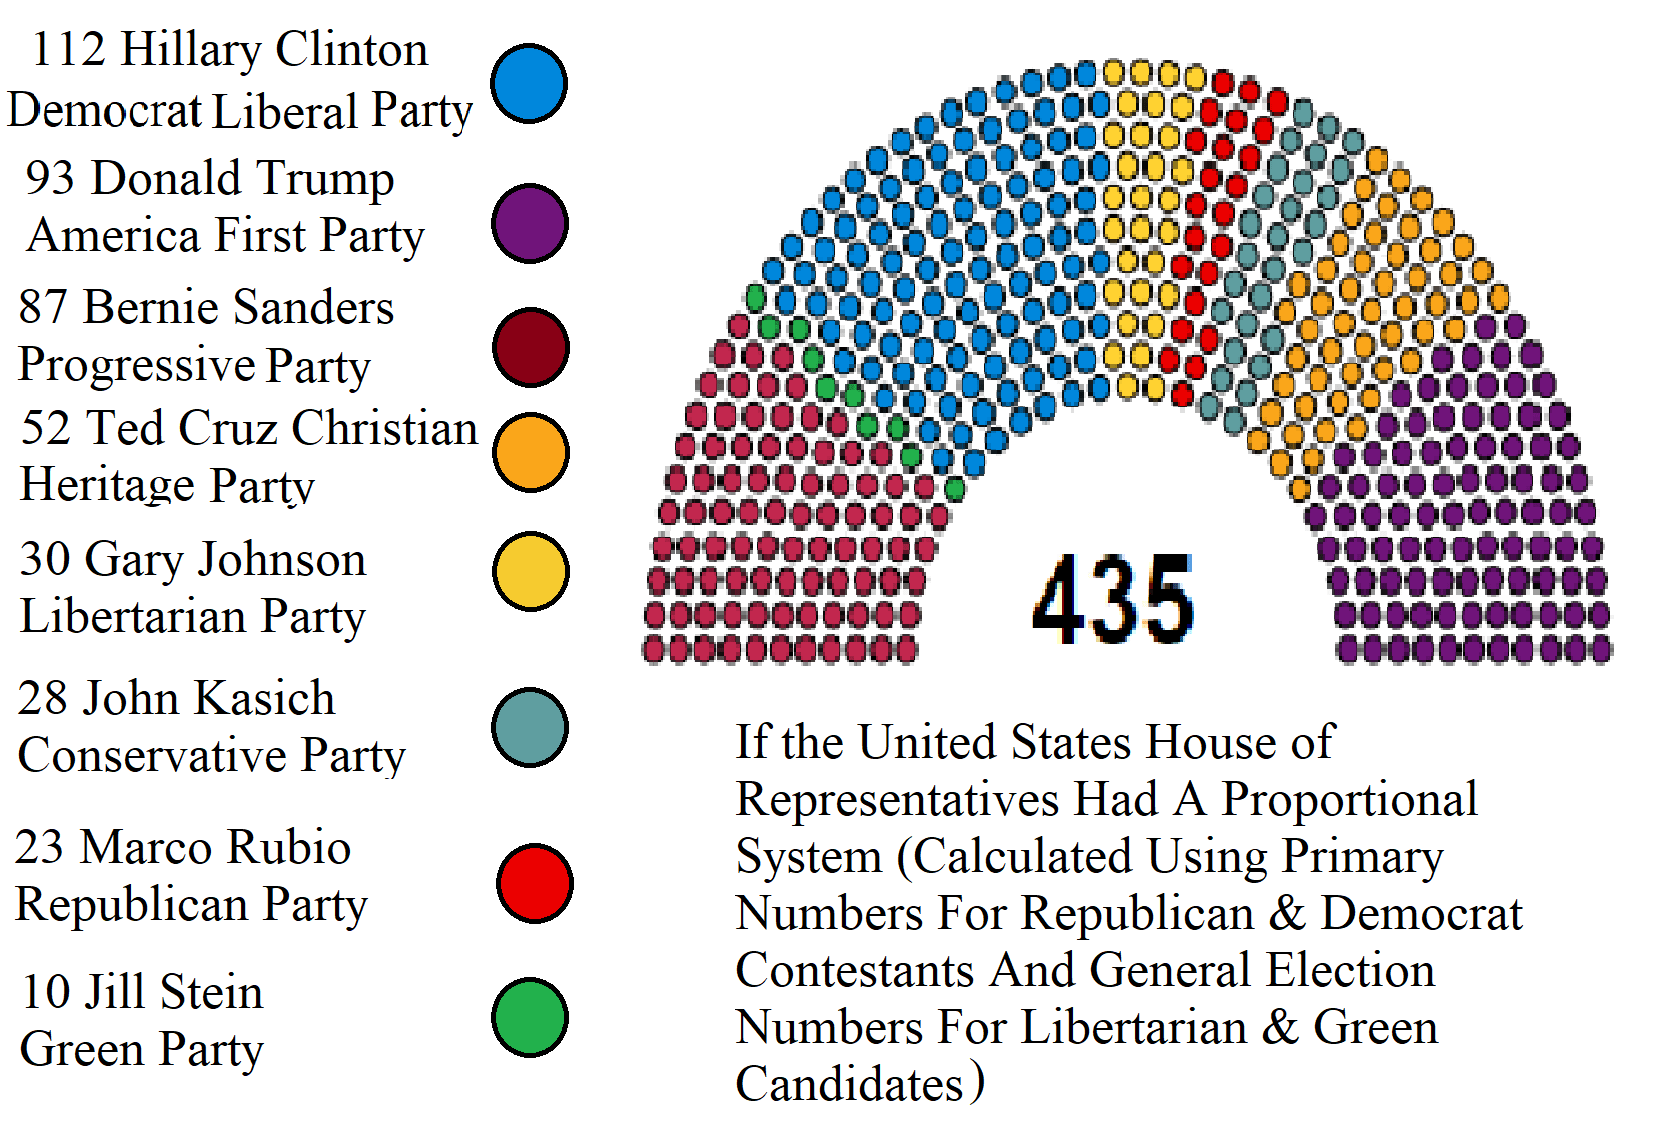 What Would Happen If The Us House Of Representatives Had A